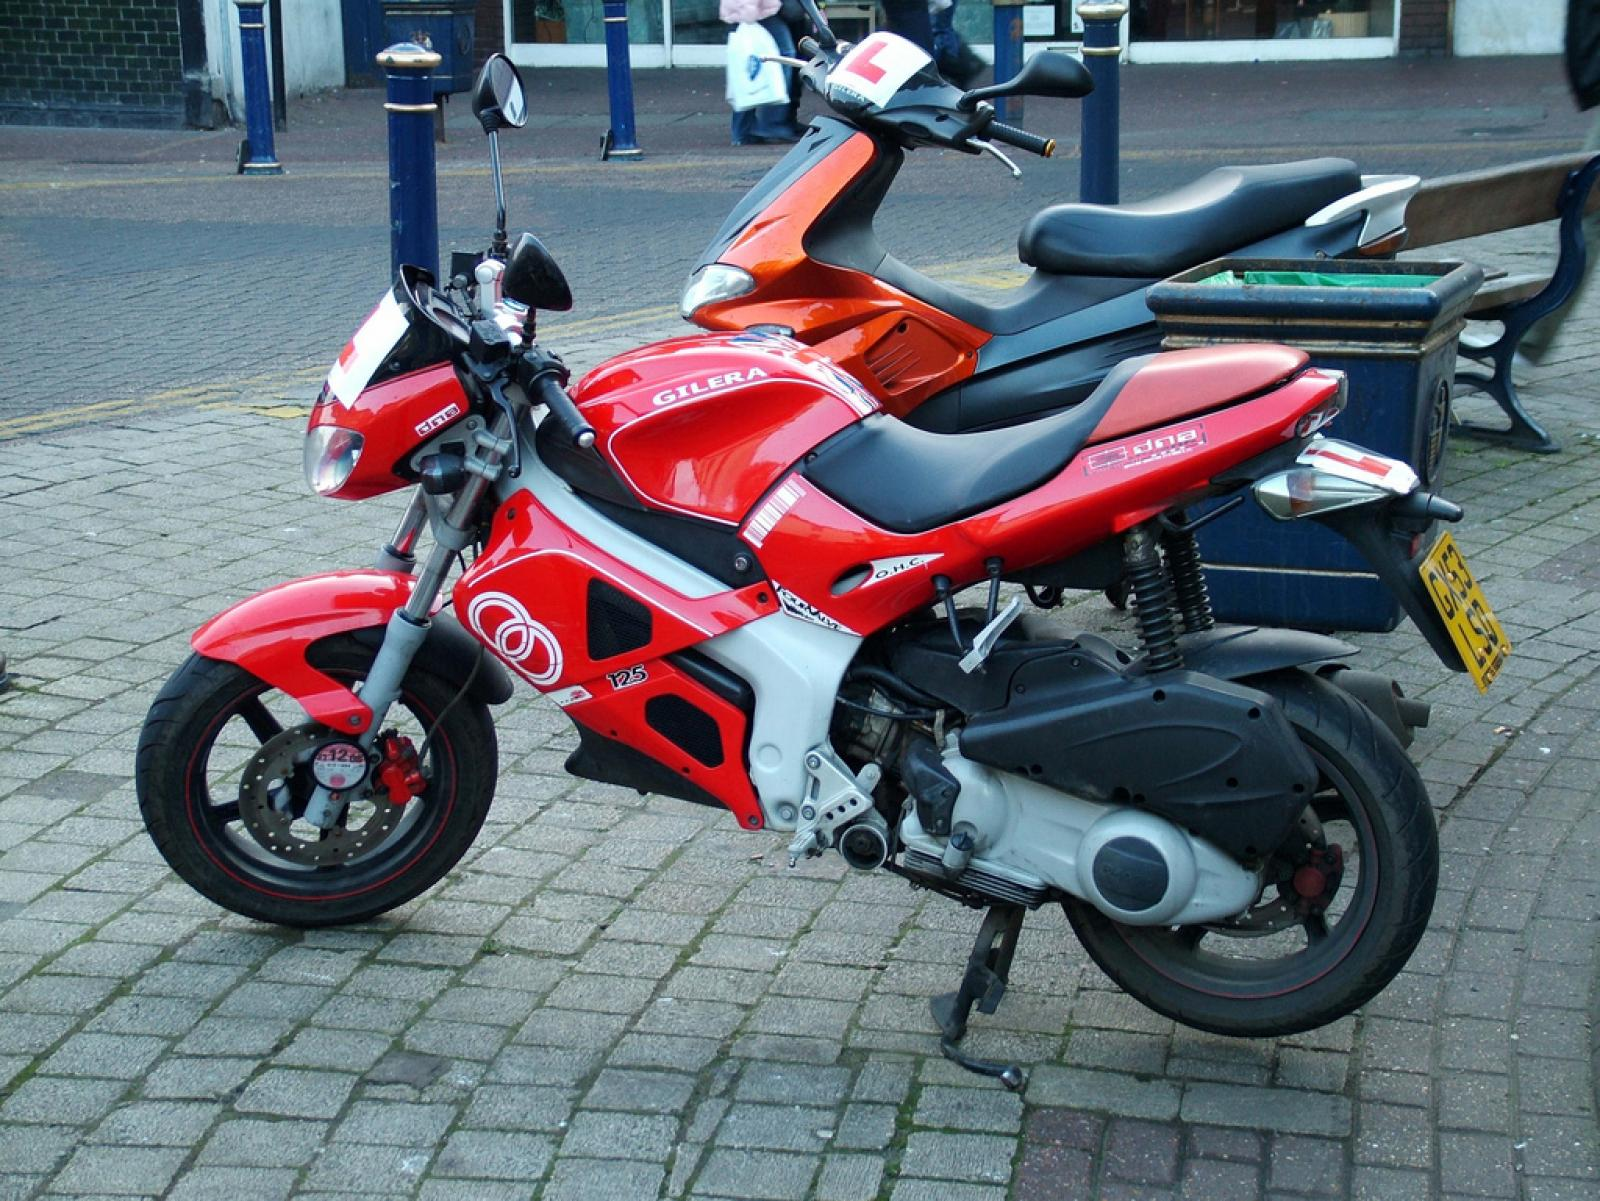 Gilera DNA 125 2002 images #96069